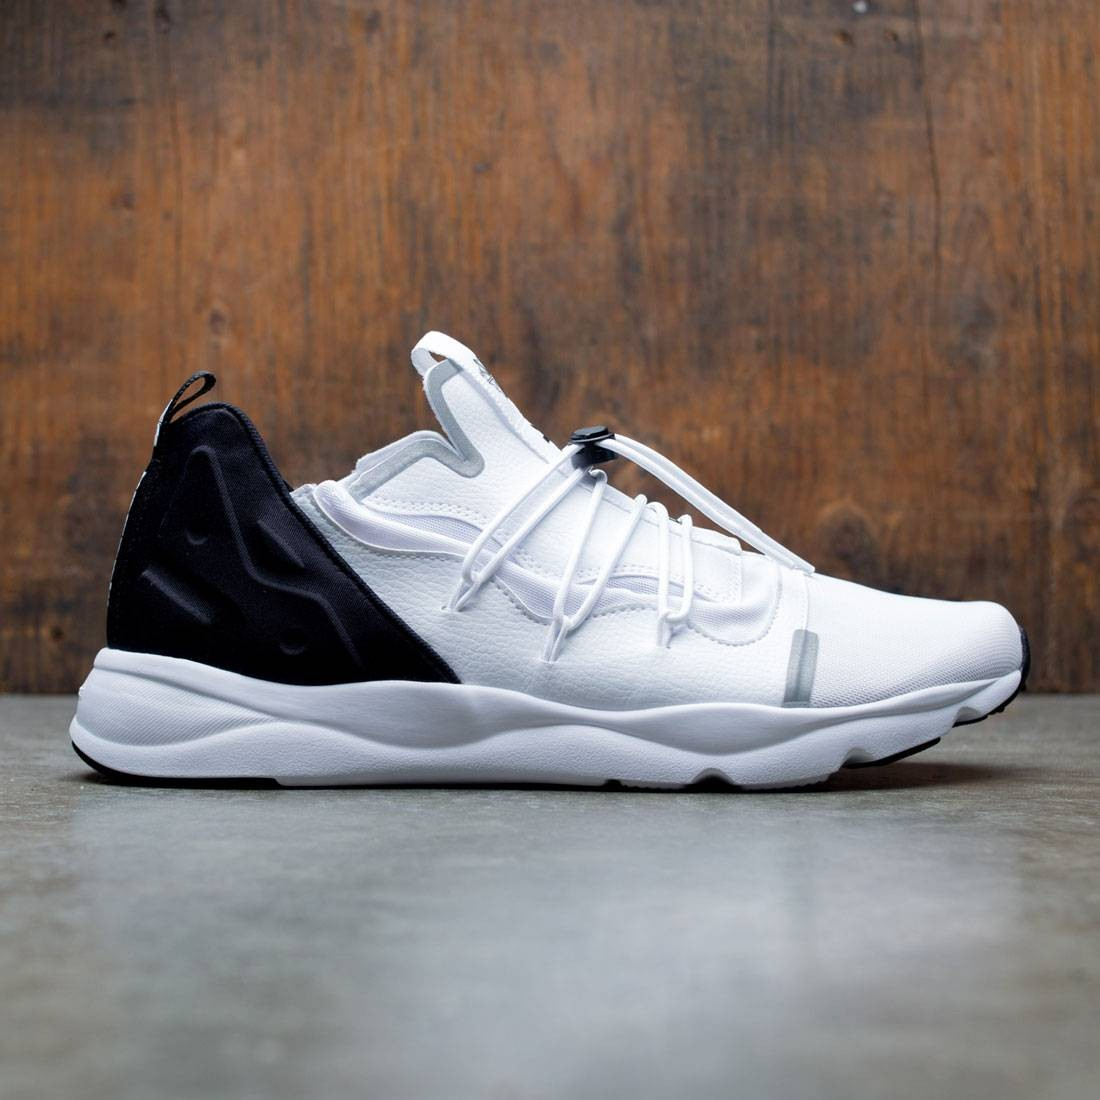 Reebok Men Furylite X (white / black)